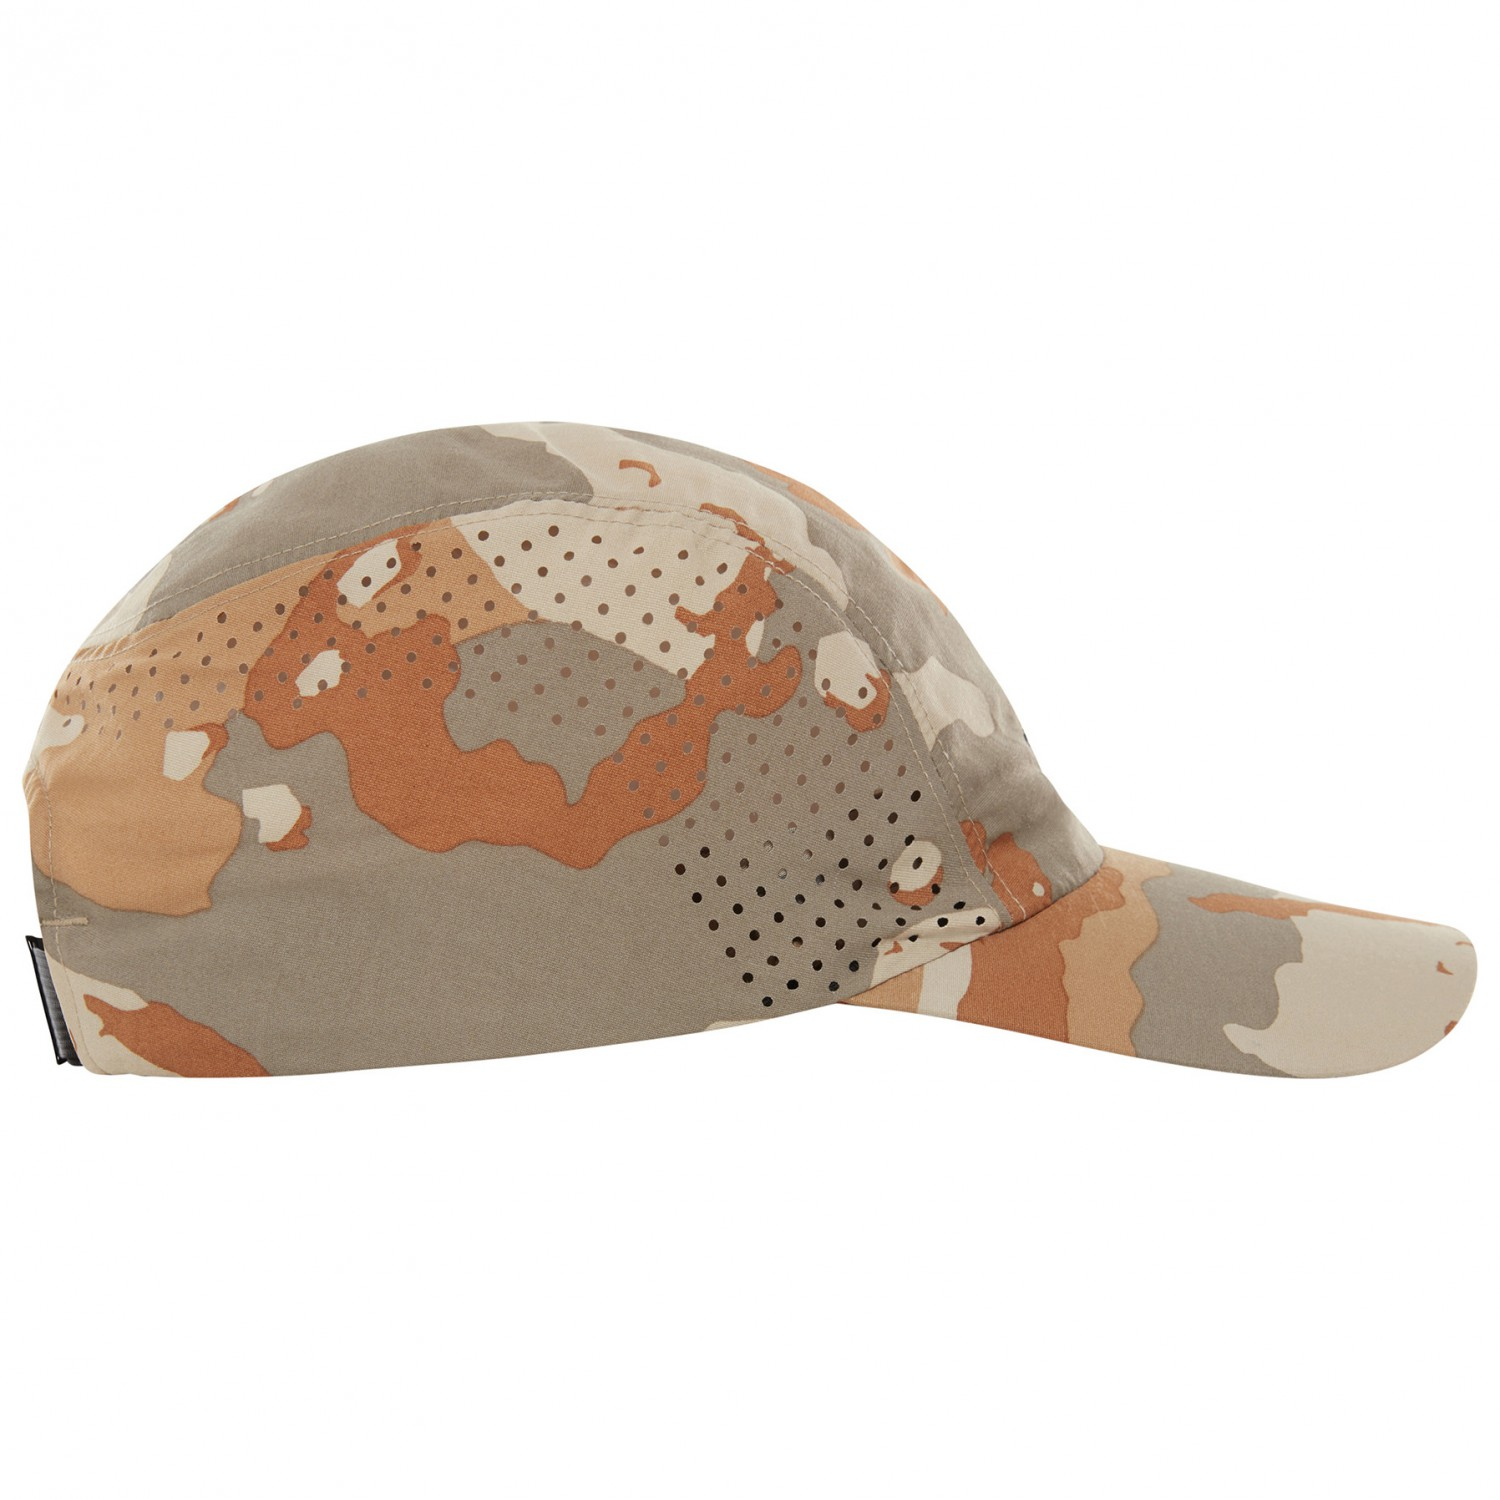 09574a23e71 ... The North Face - Sun Shield Ball Cap ...